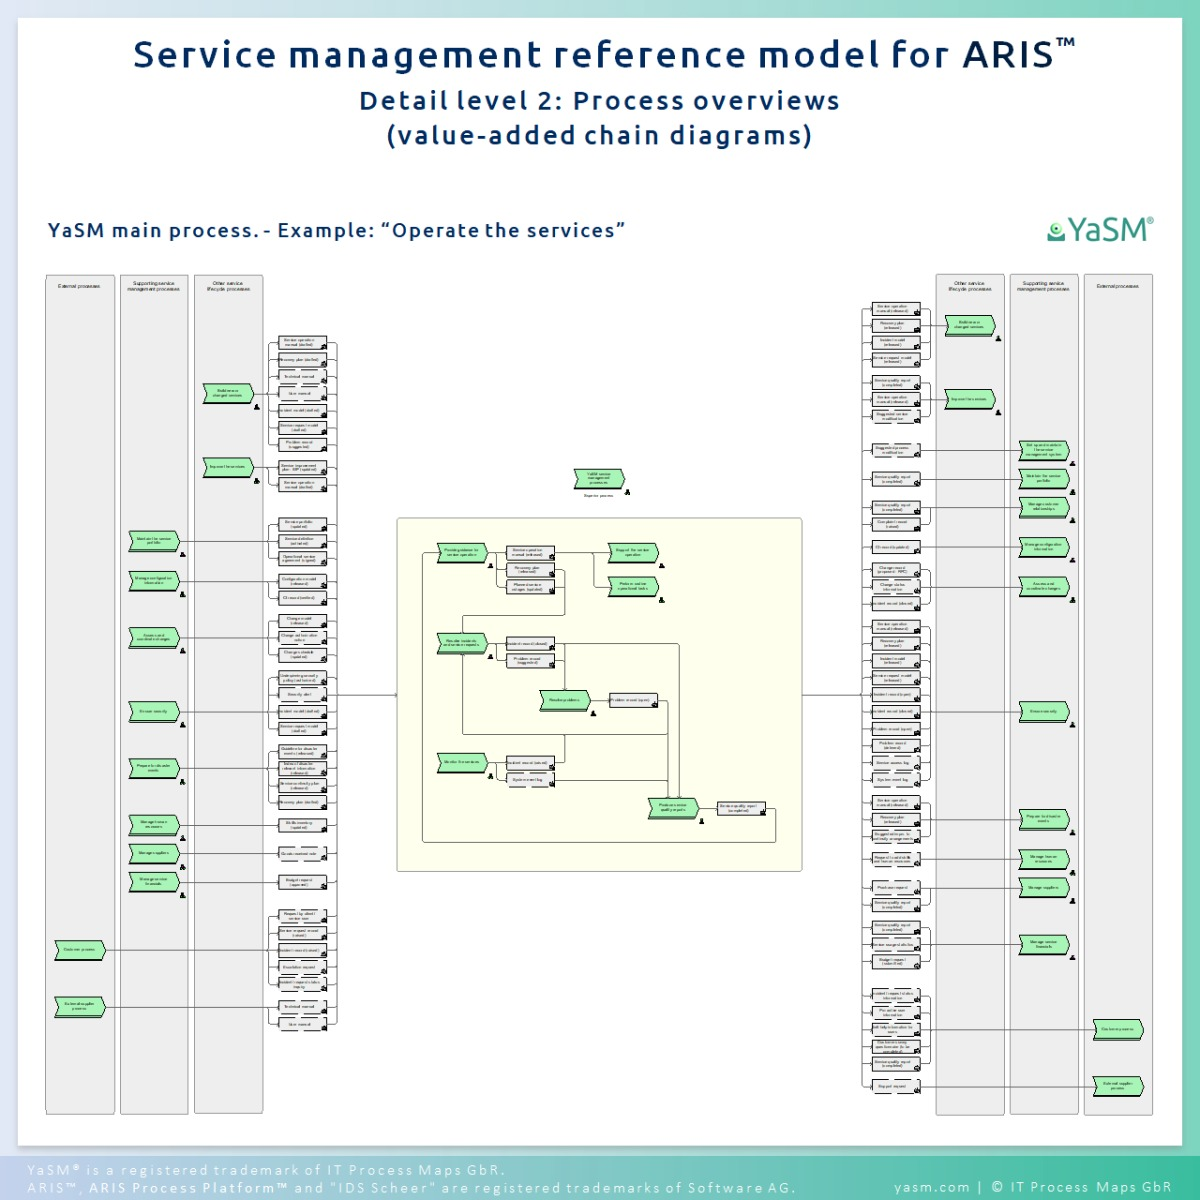 process overviews (aris 'value-added chain diagrams' - vcd) for each